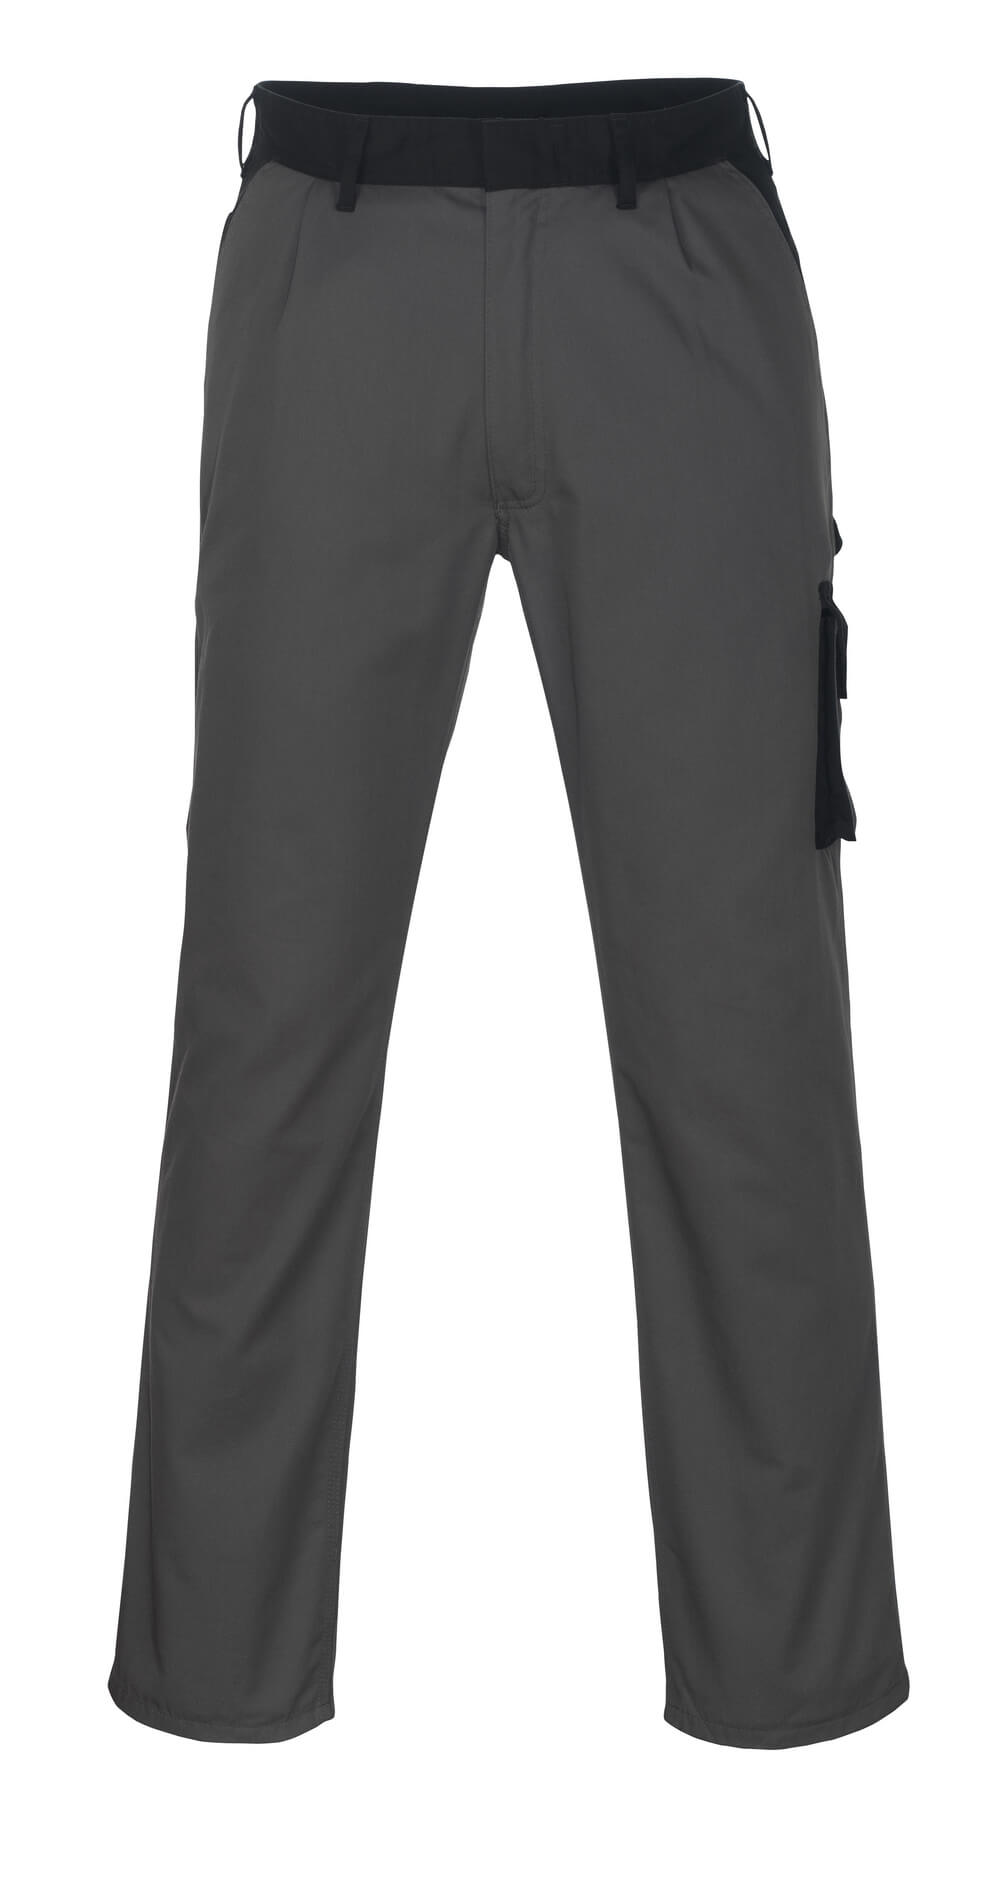 08779-442-8889 Pants with thigh pockets - anthracite/black